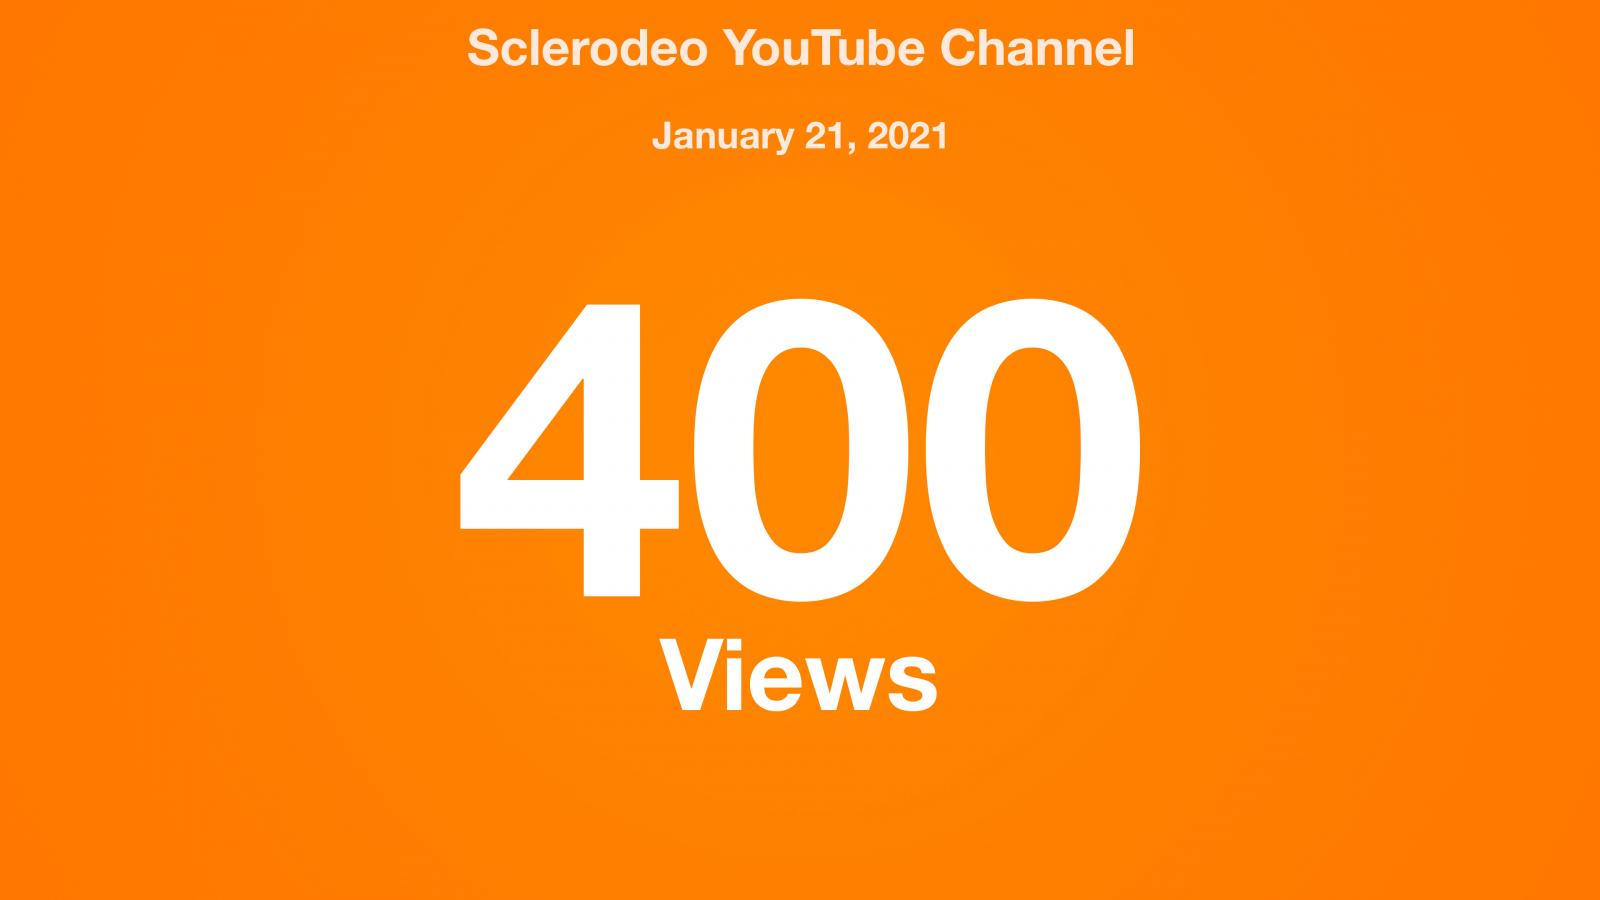 Sclerodeo YouTube Channel, January 21, 2021, 400 Views